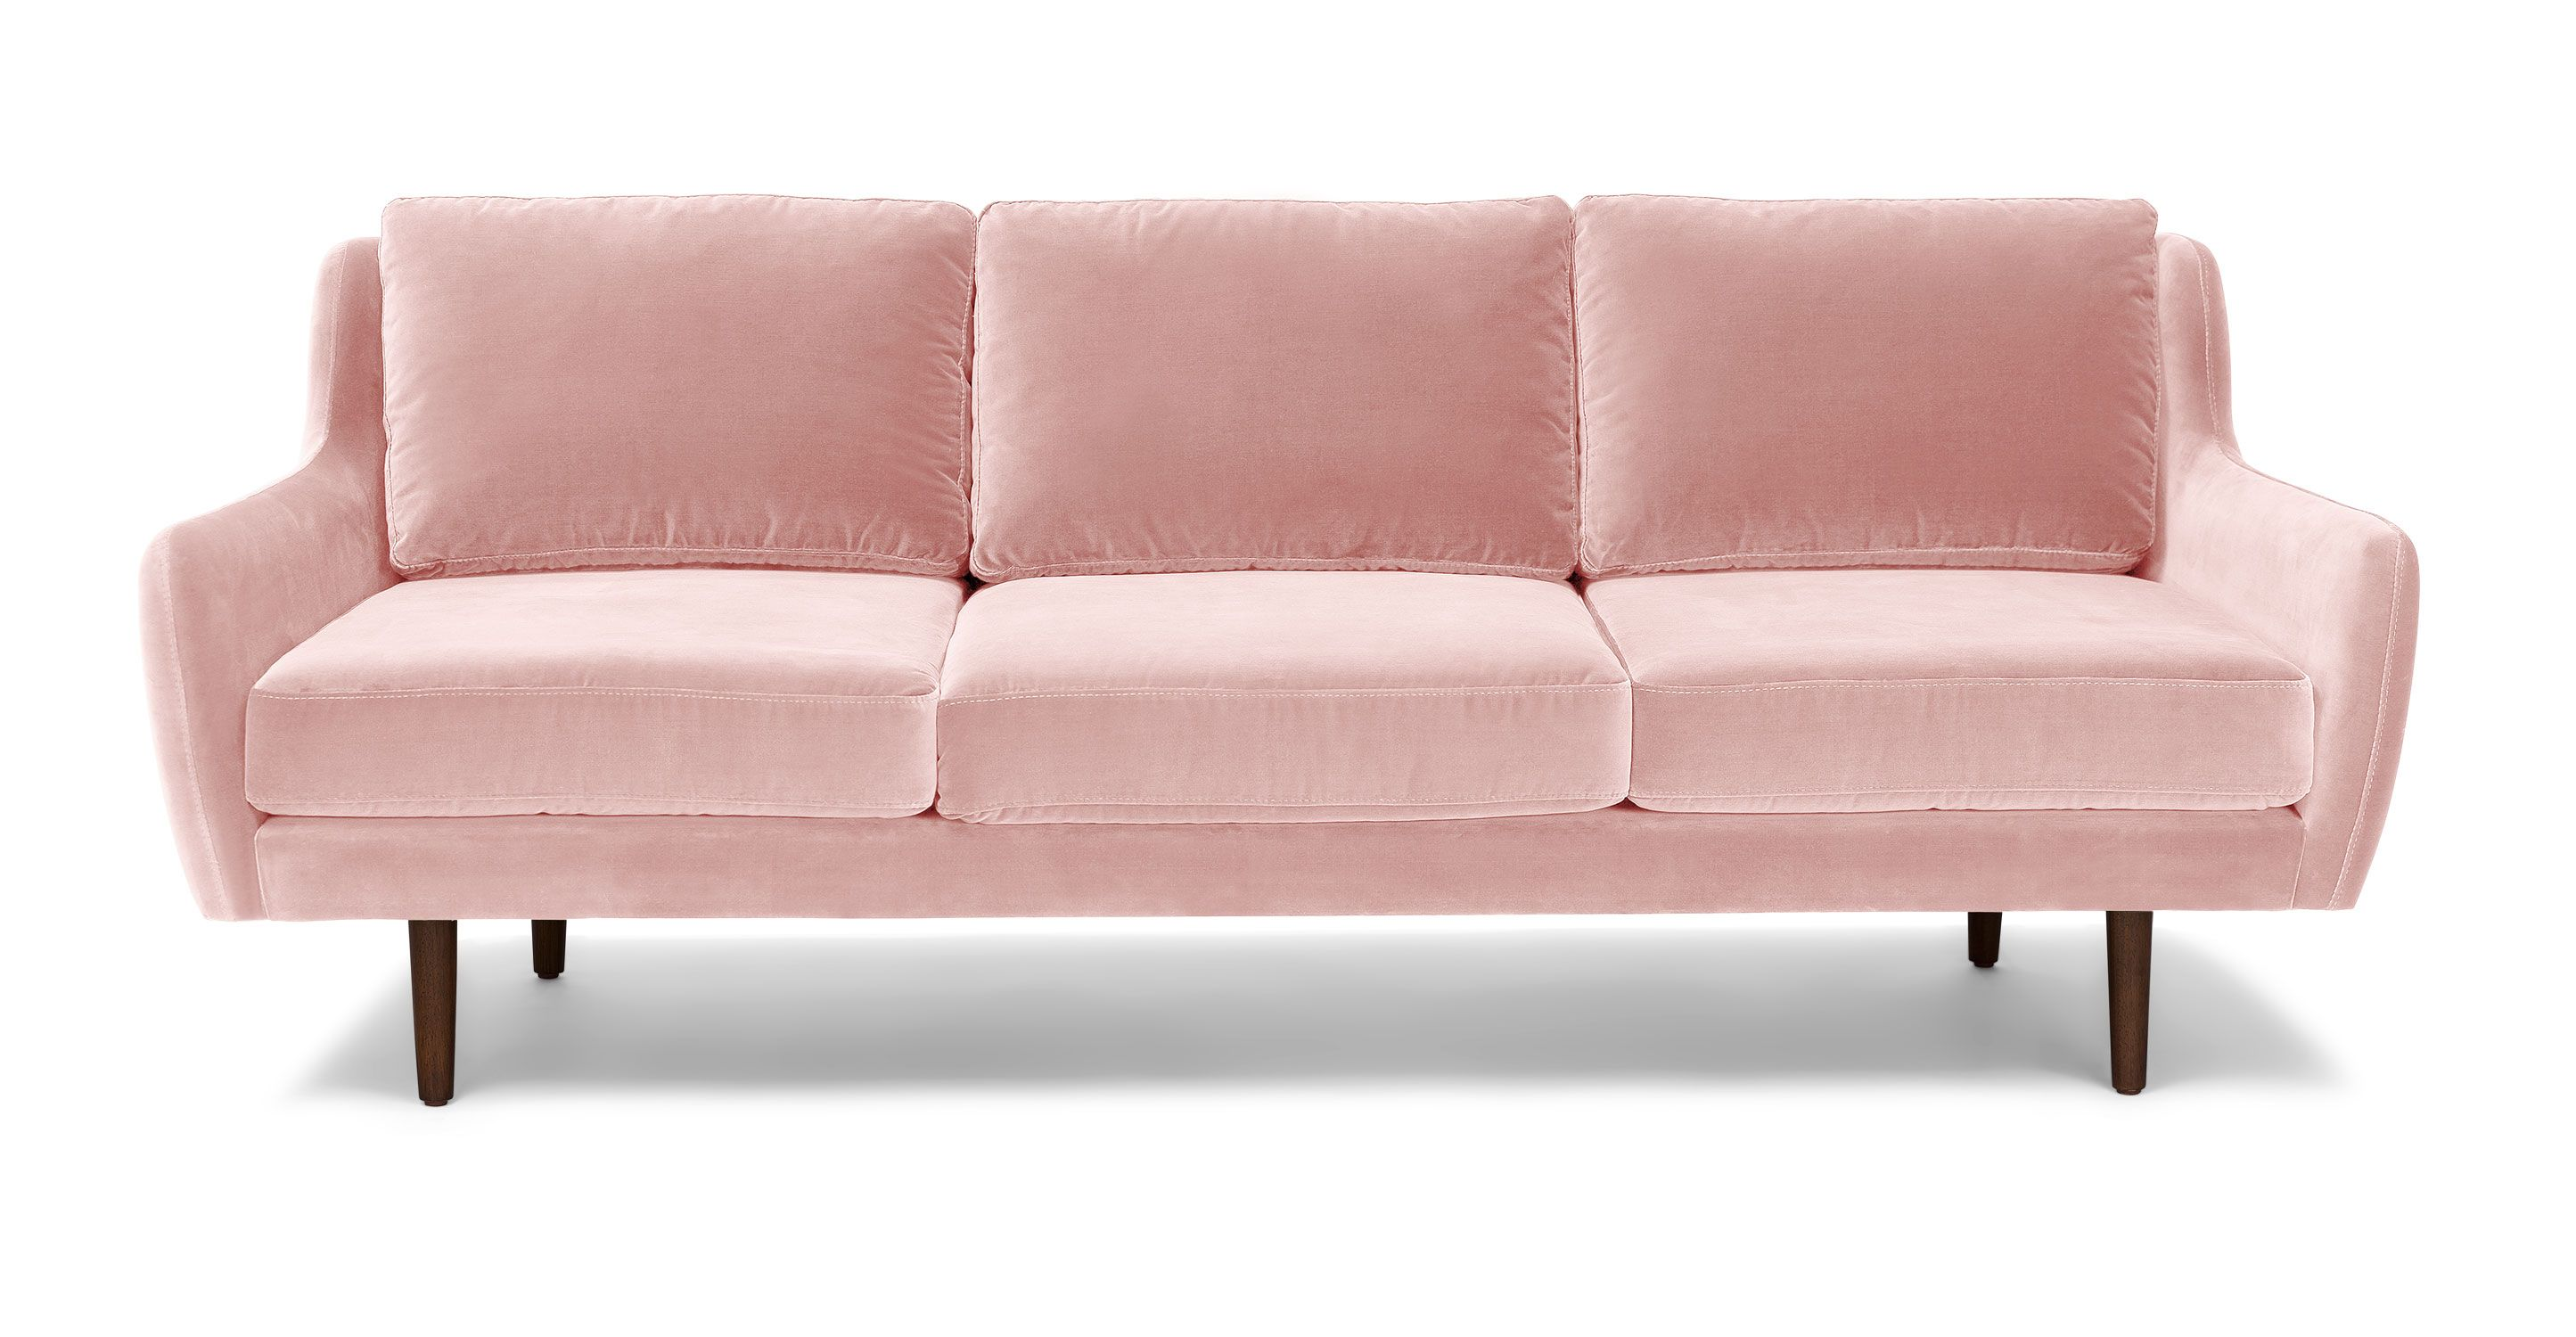 Matrix Blush Pink Sofa Sofas Article